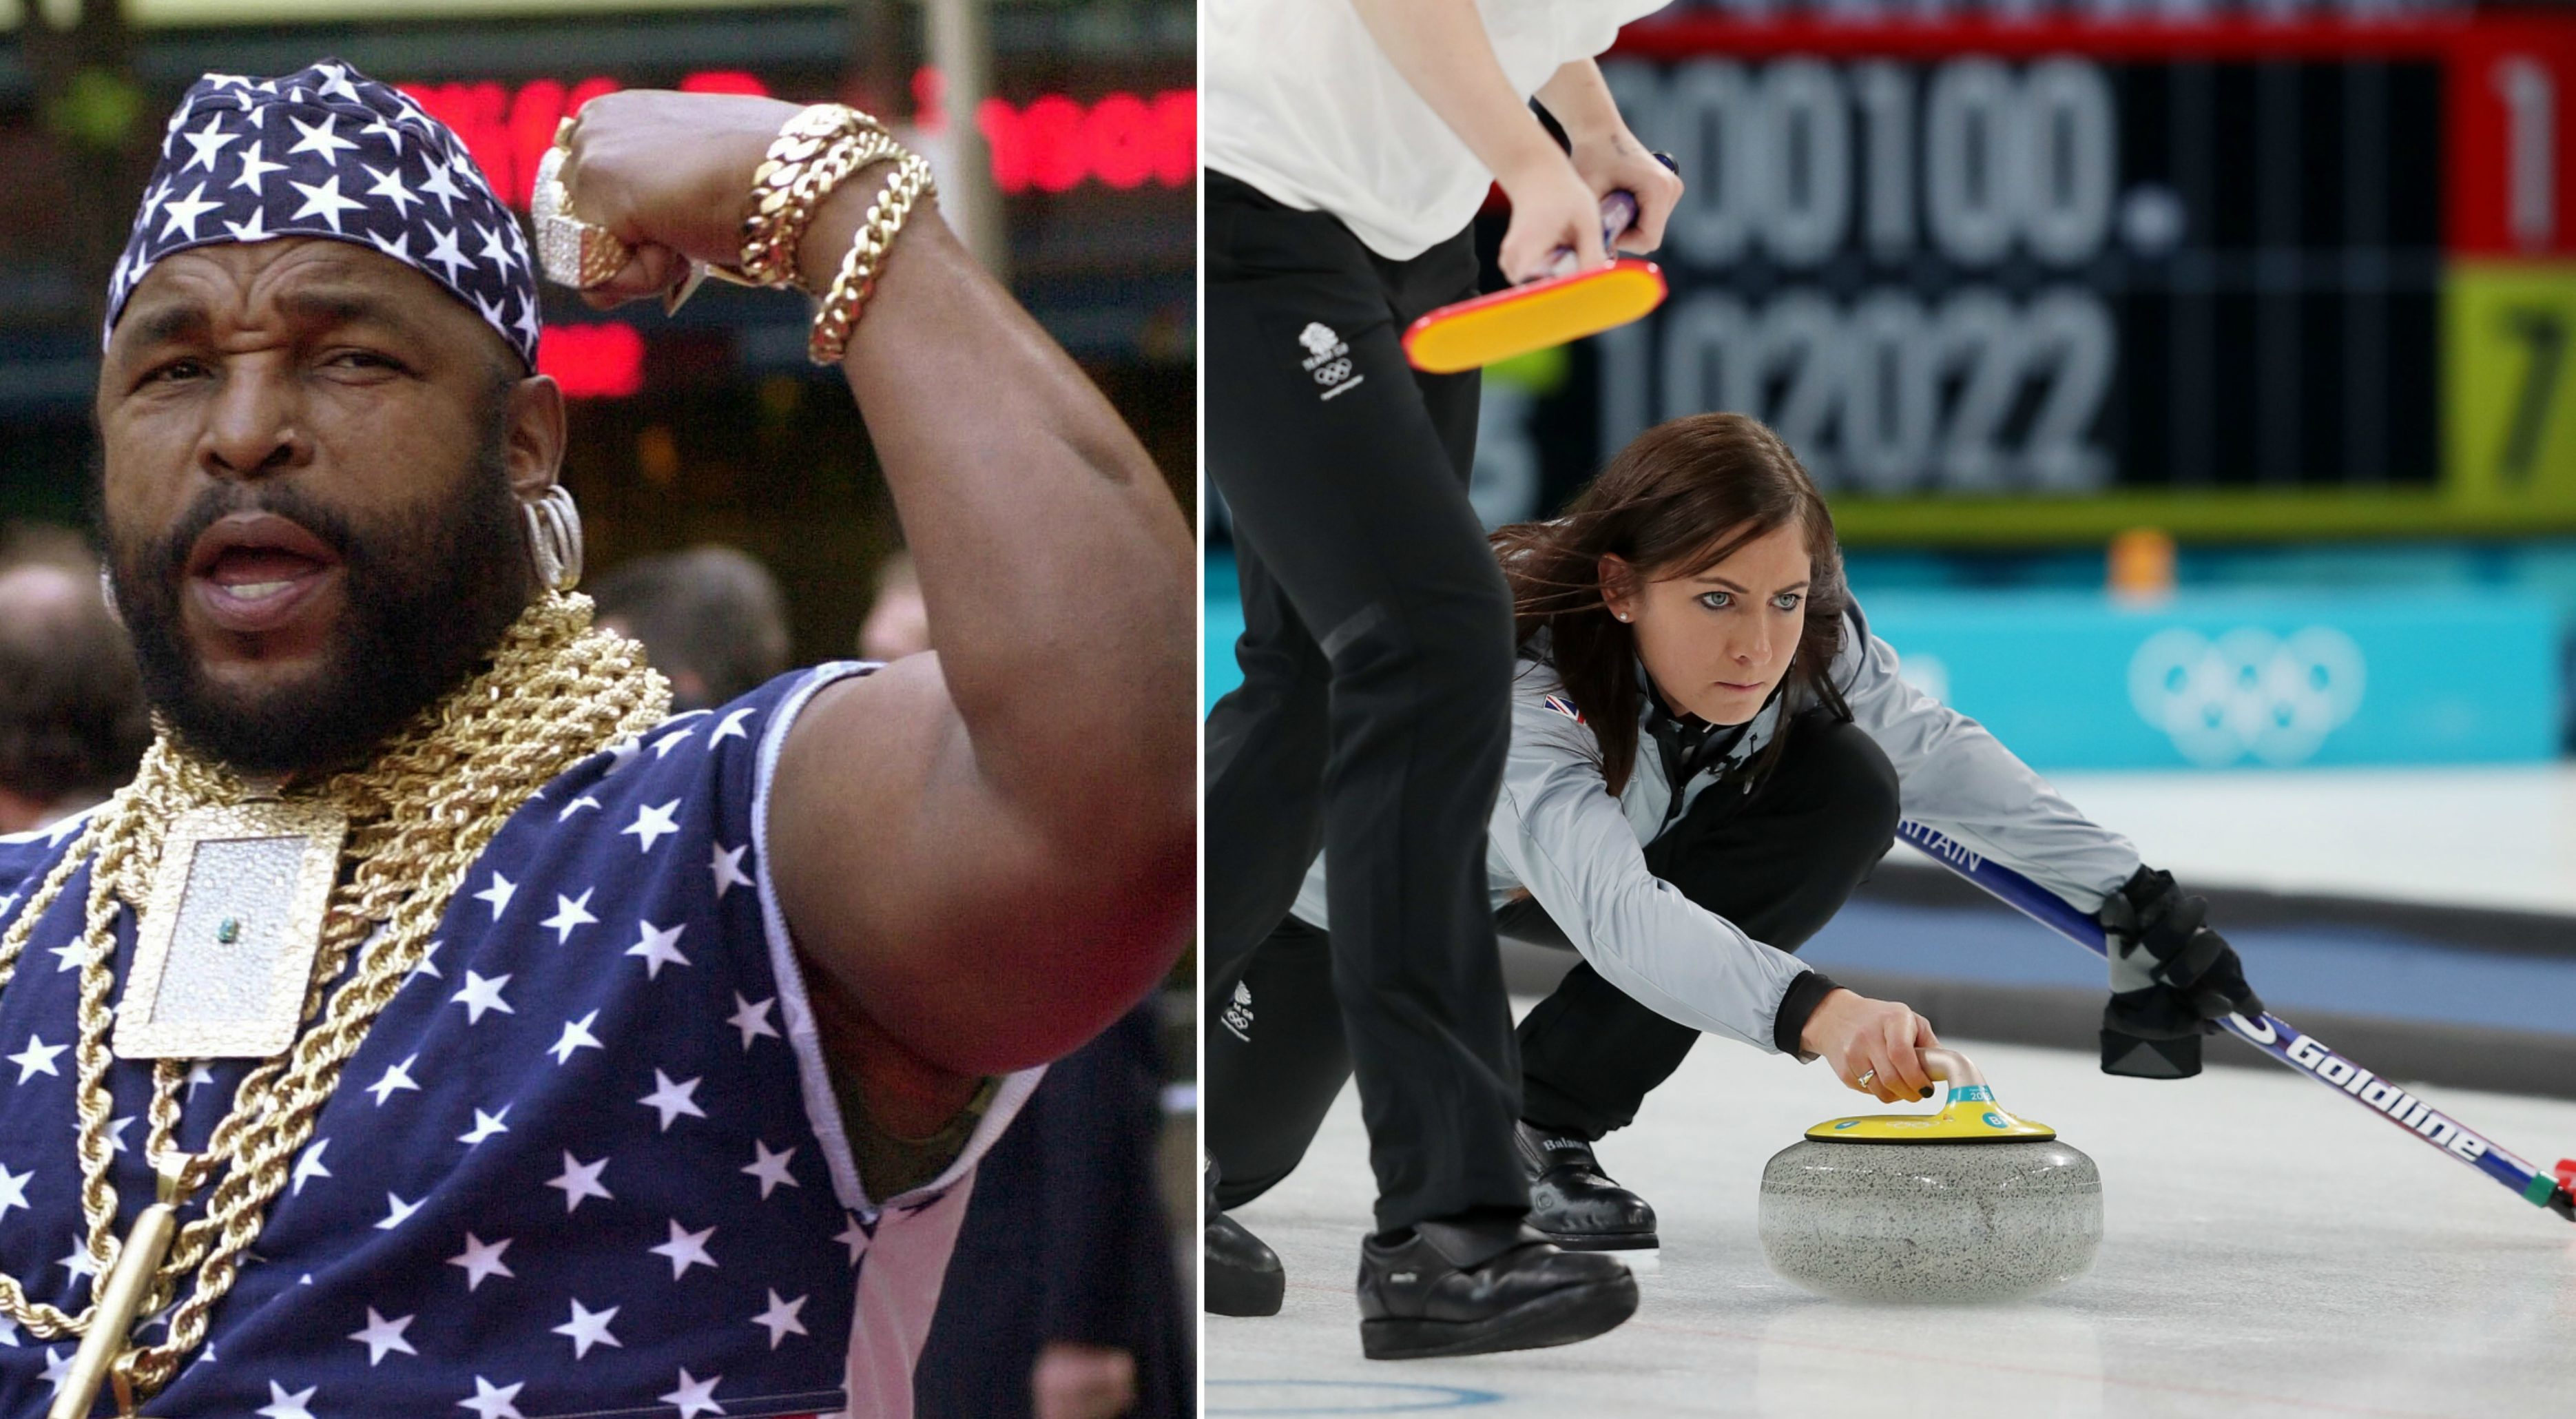 Curling is cool, fool!' - Is Mr T backing our Eve in the